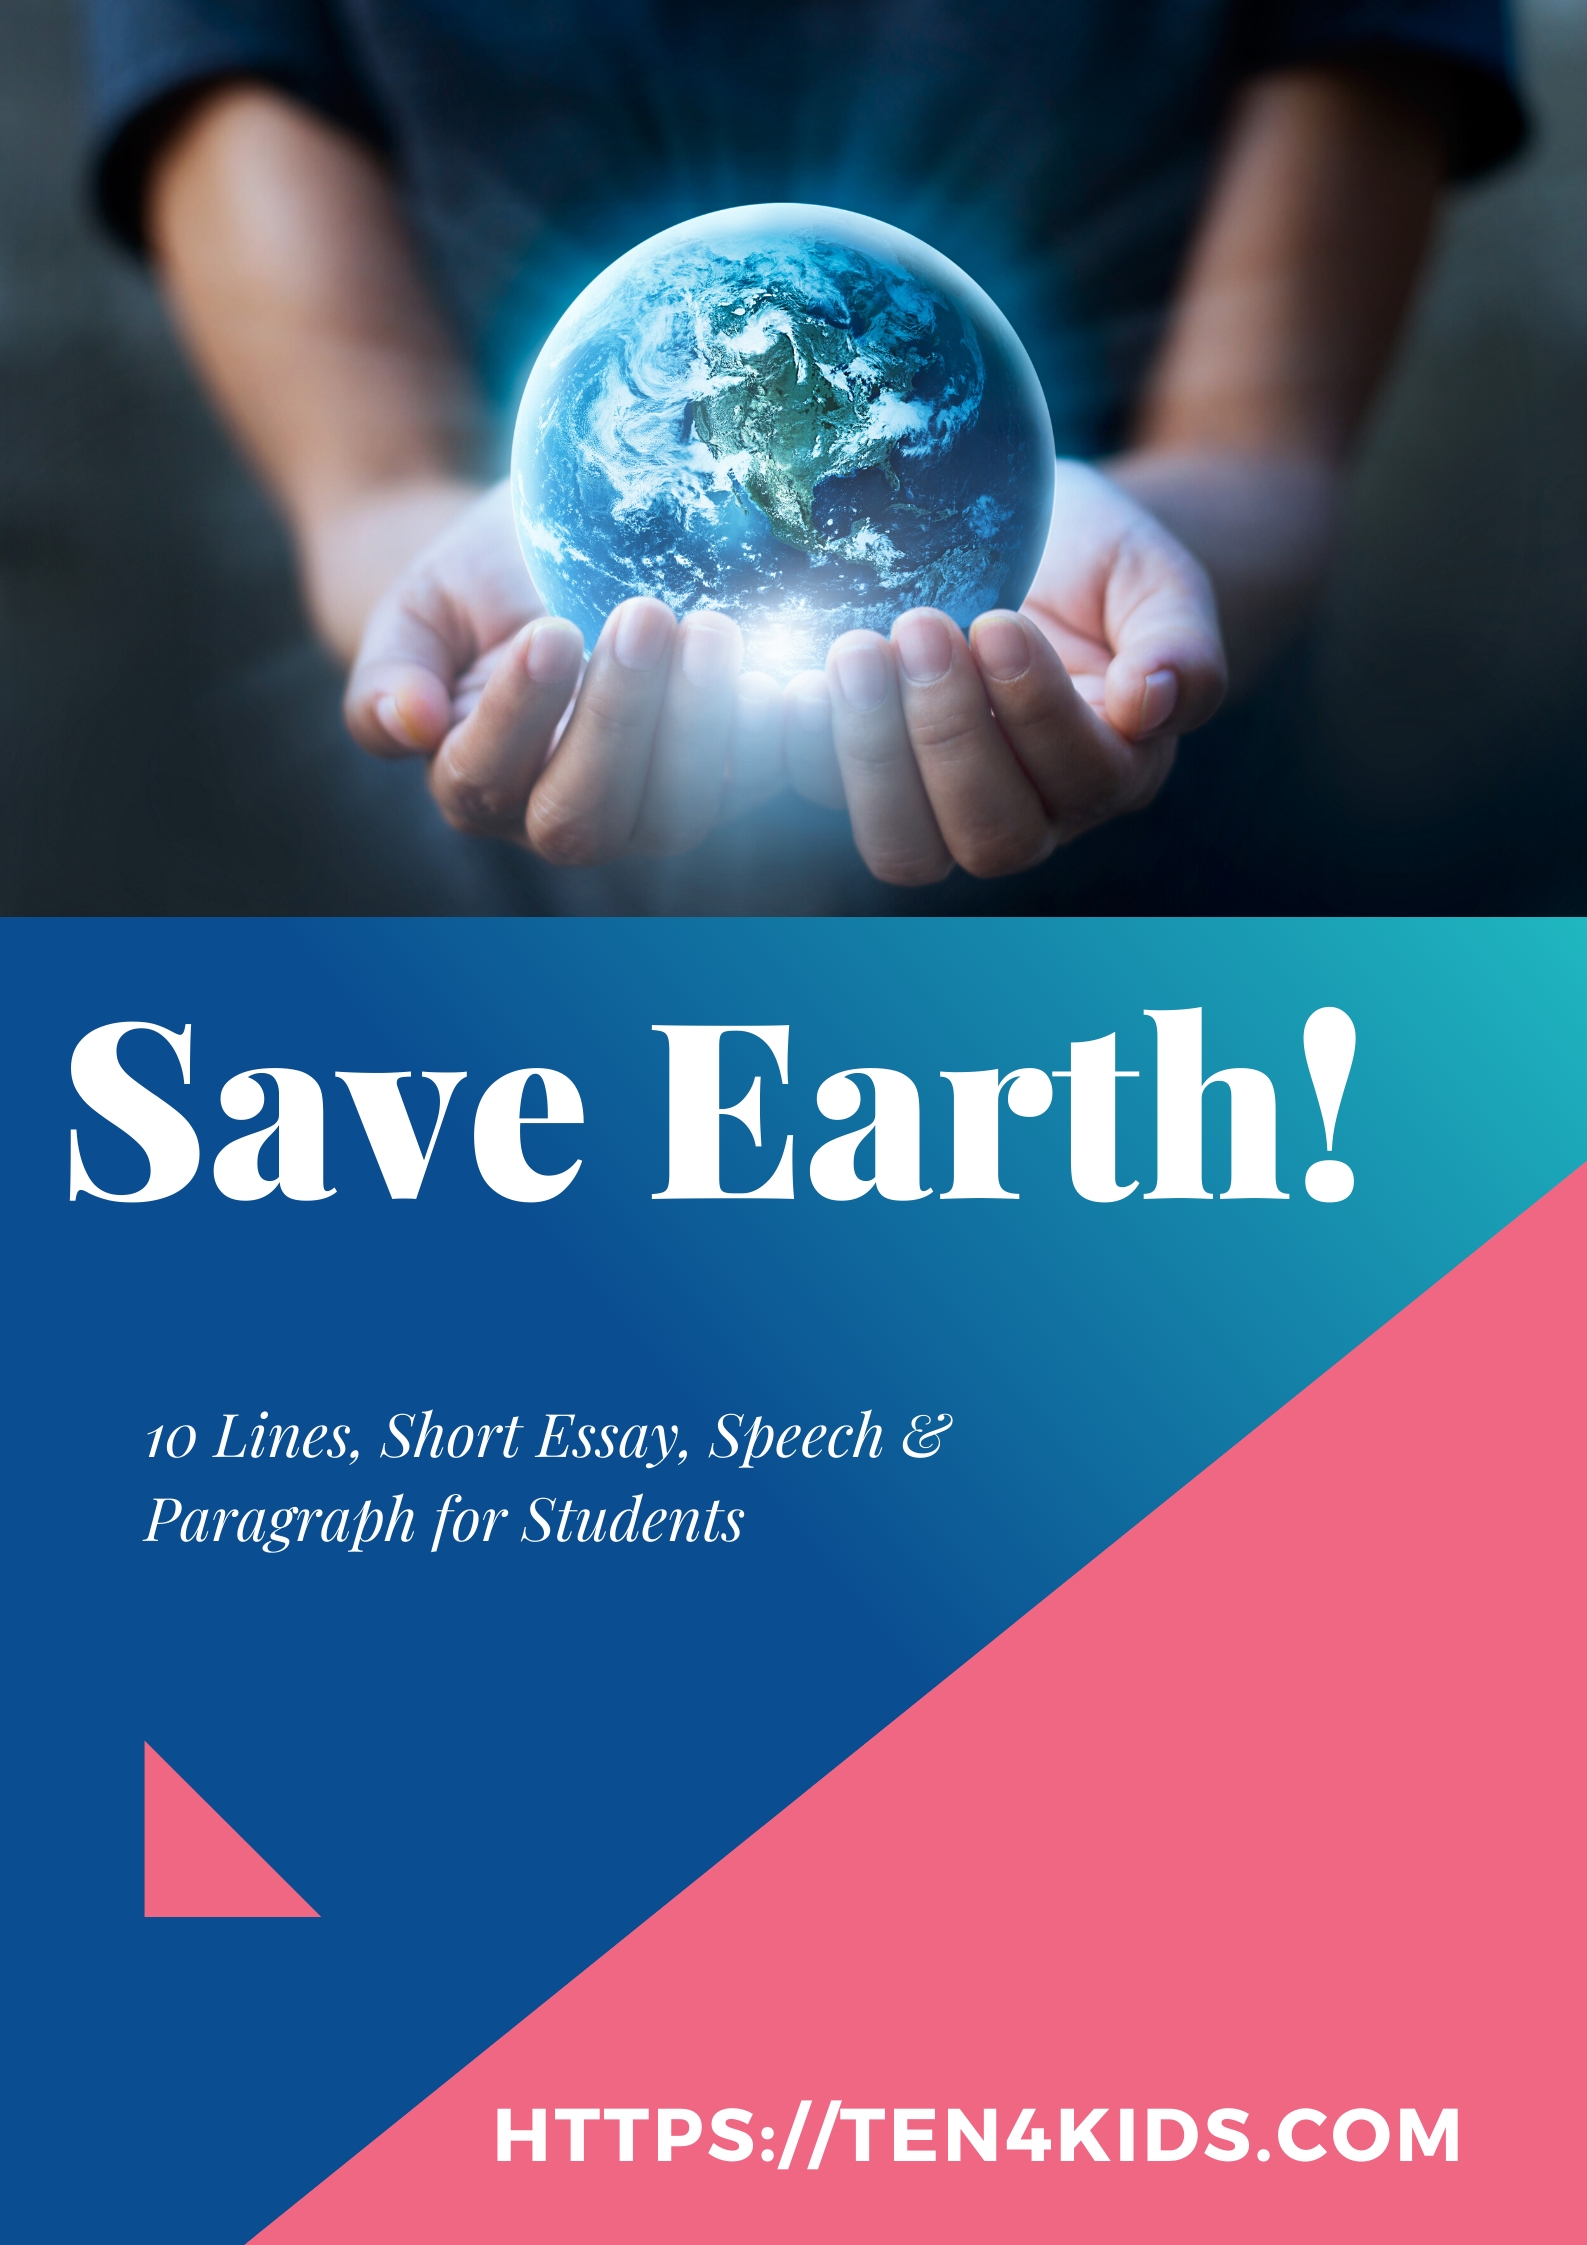 Save Earth Essay & Paragraph For Students